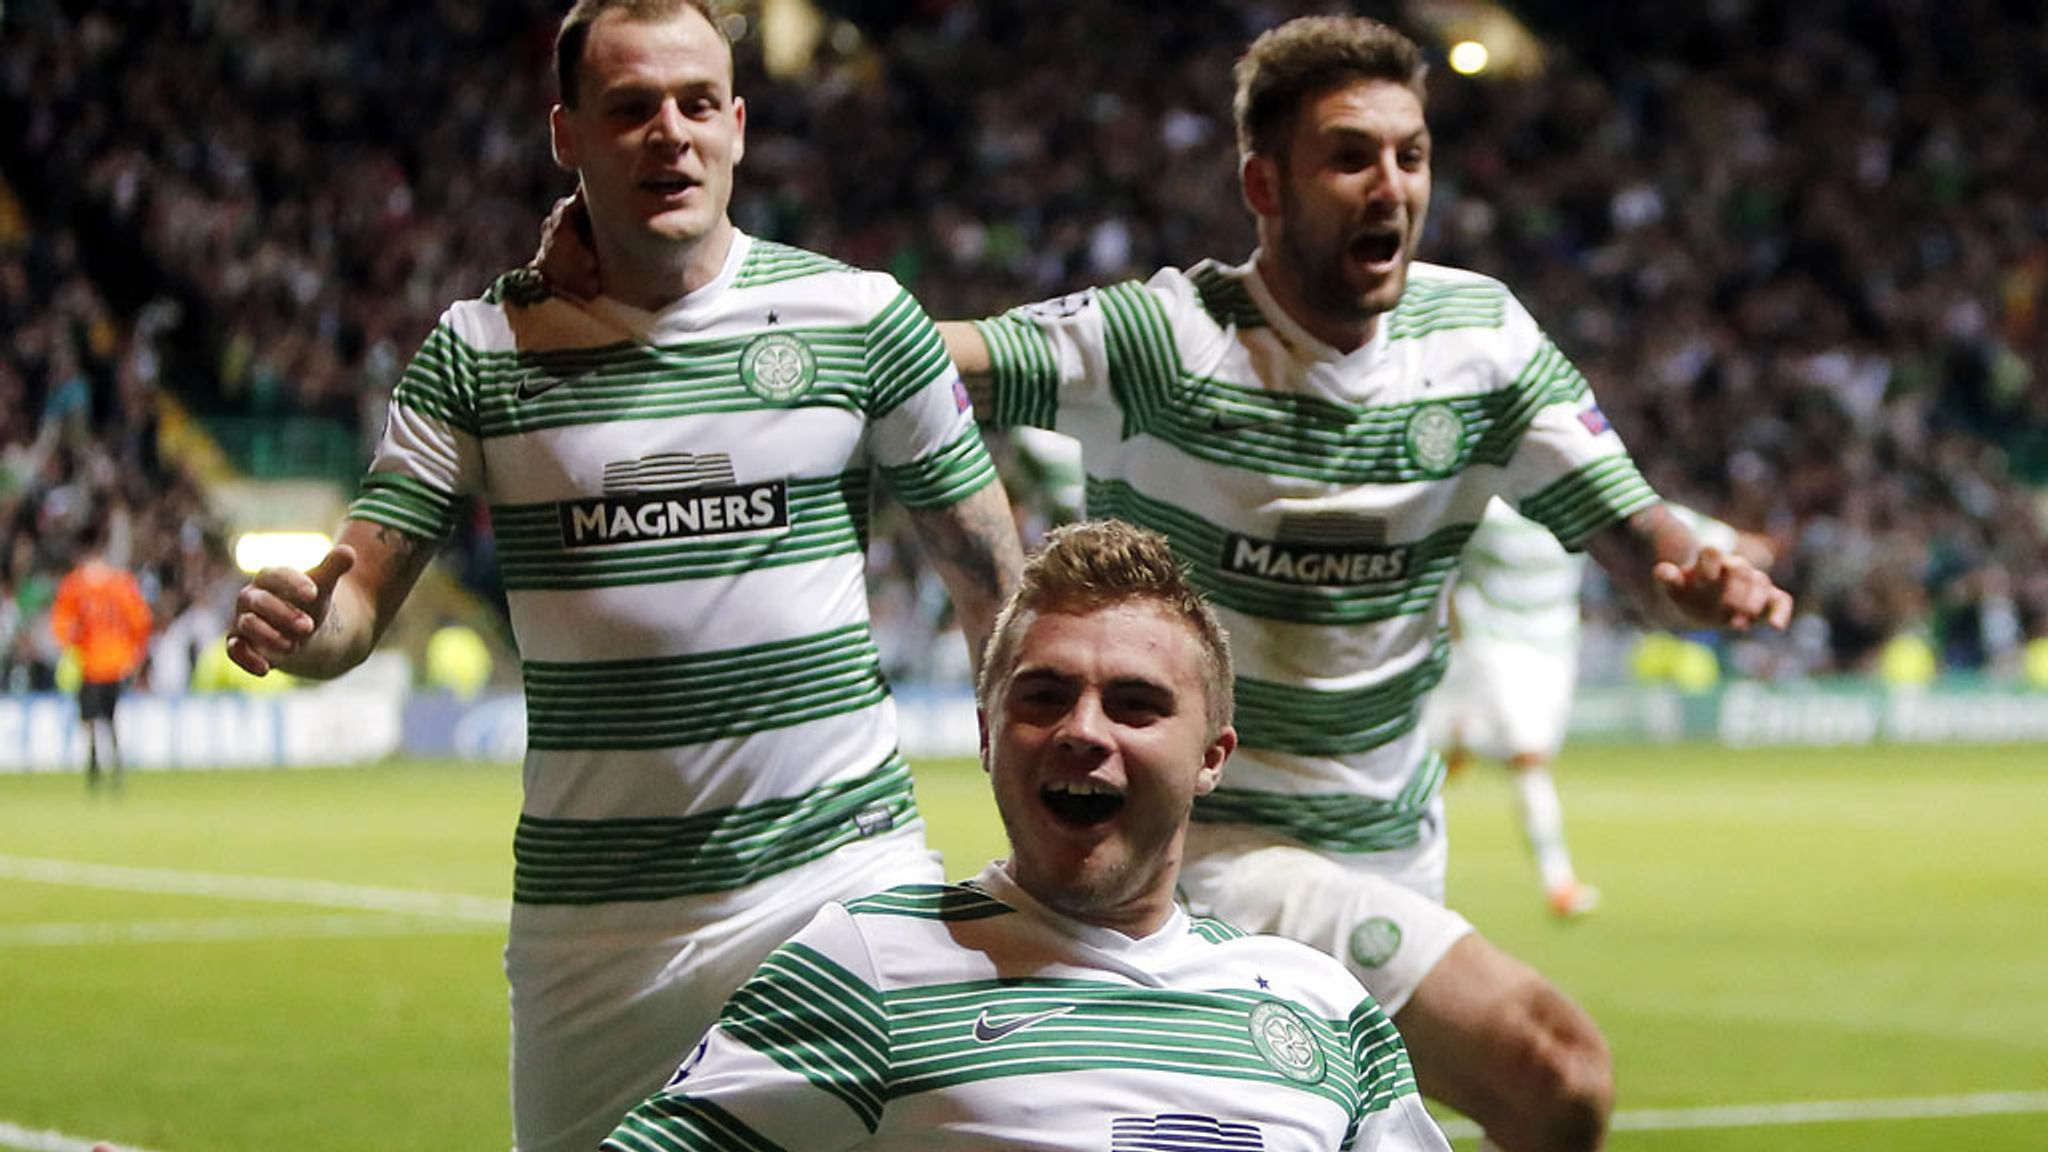 Celtic v shakhter karagandy betting lines afl betting history of super